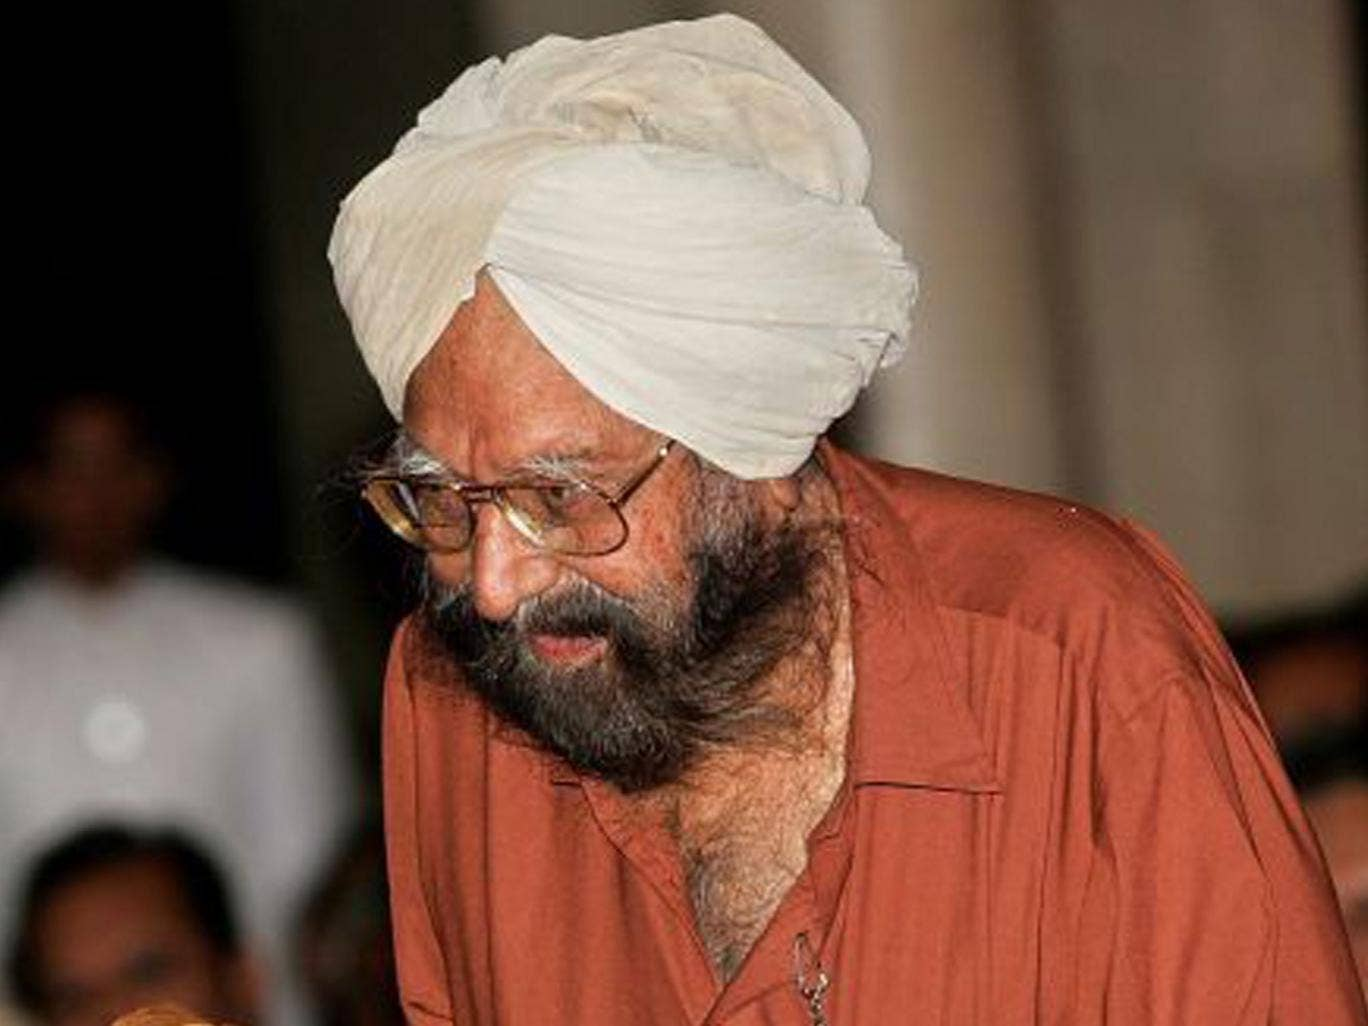 Khushwant Singh receives the Padma Vibhushan, one of India's highest civilian awards, in 2007